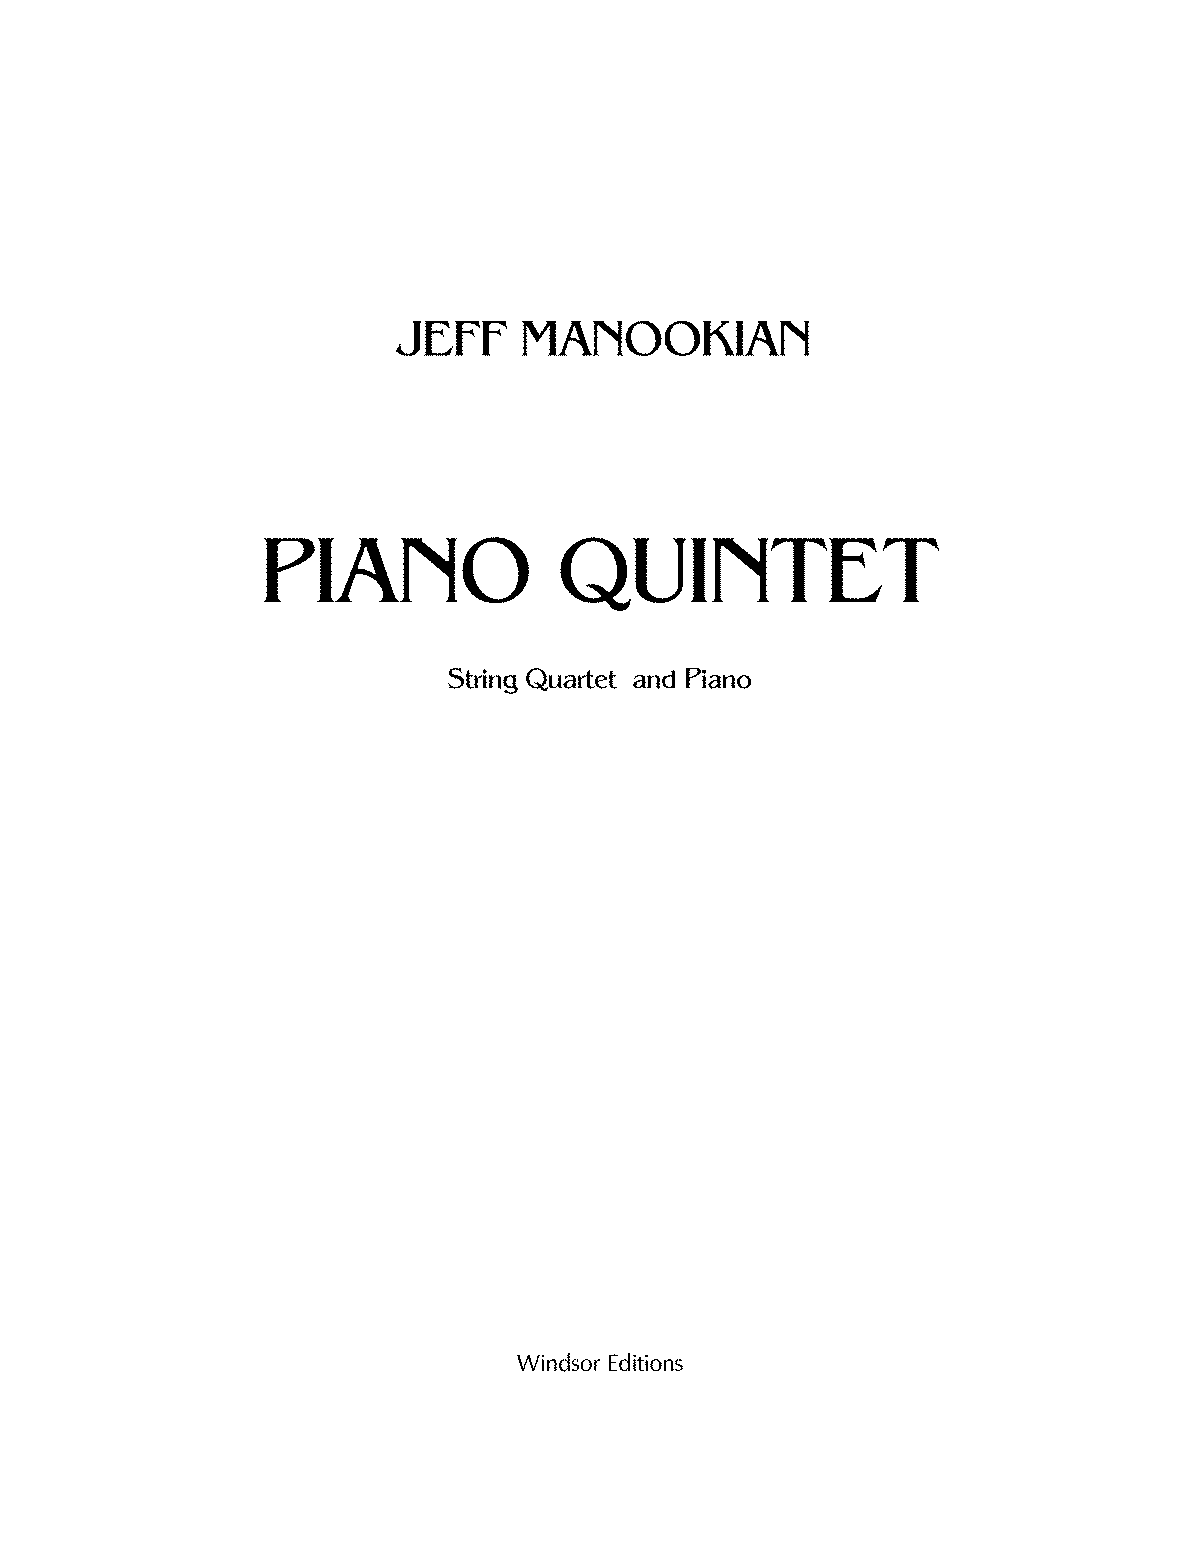 PMLP119599-PIANO QUINTET - 1st movement.pdf